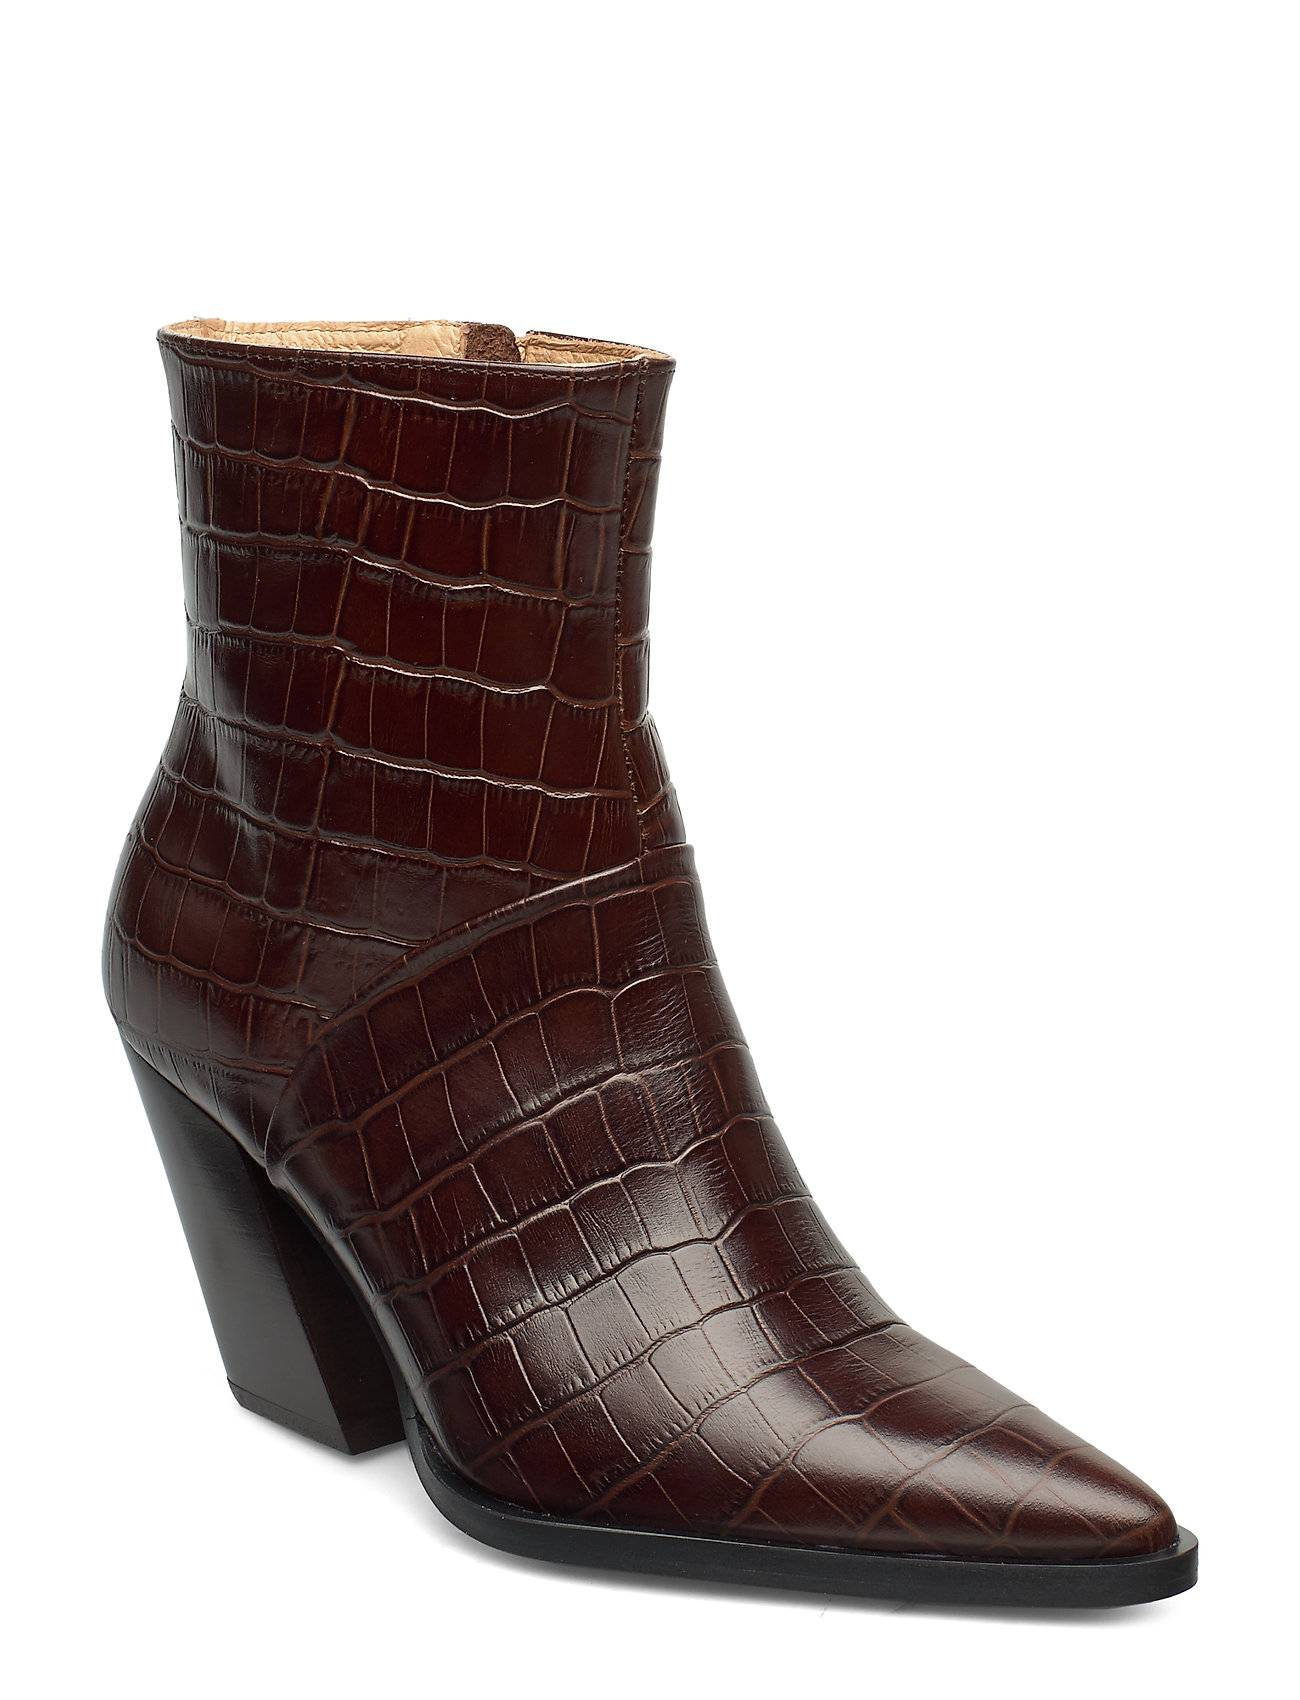 ANNY NORD Escape From The West Ankle Boot Shoes Boots Ankle Boots Ankle Boots With Heel Ruskea